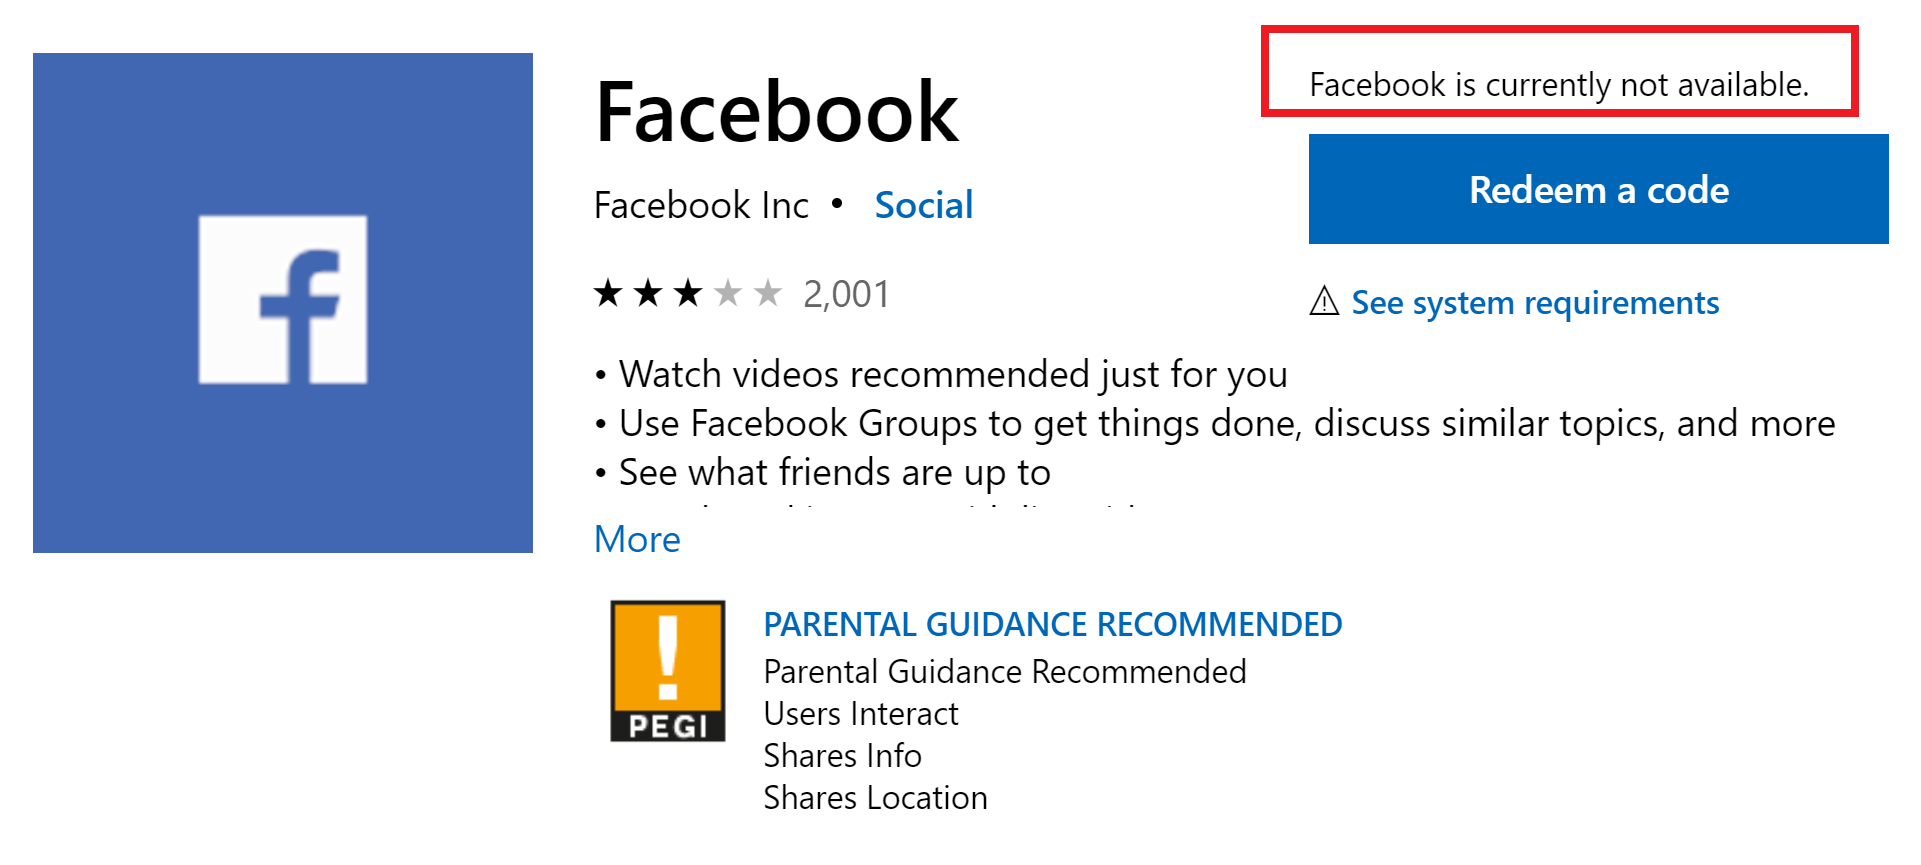 Sad Day Facebook App For Windows 10 Removed From Microsoft Store